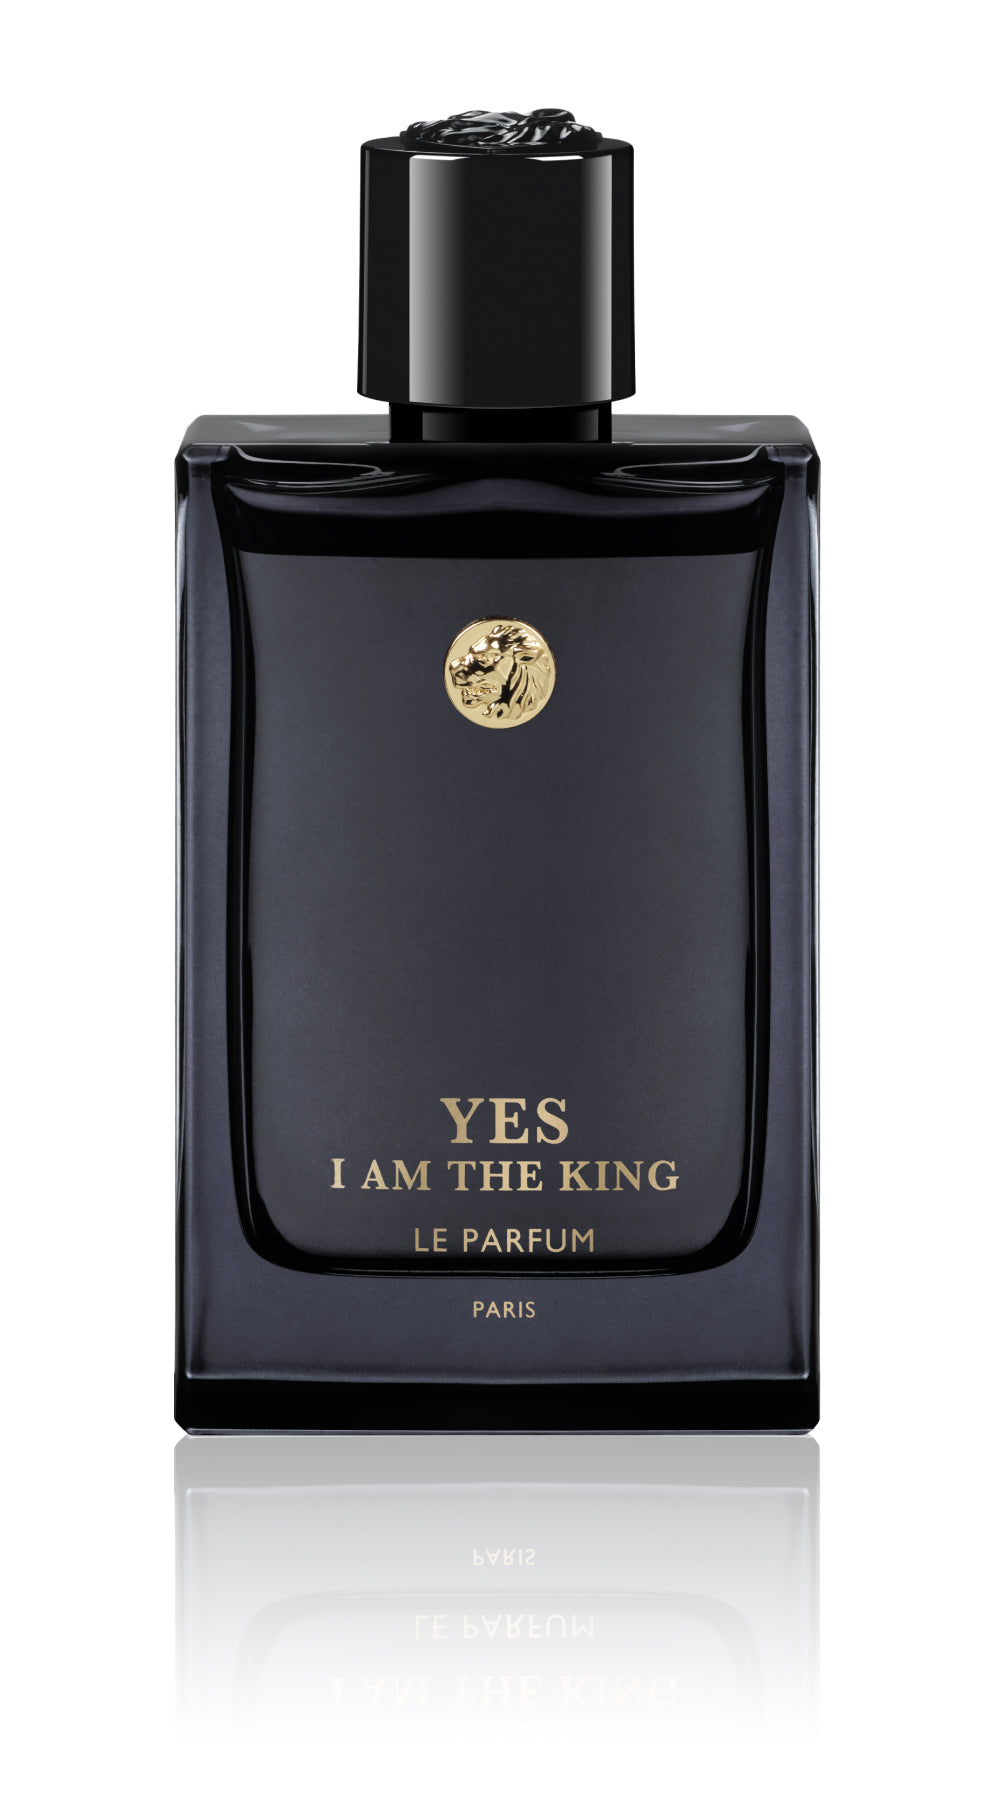 Yes I Am The King Le Parfum